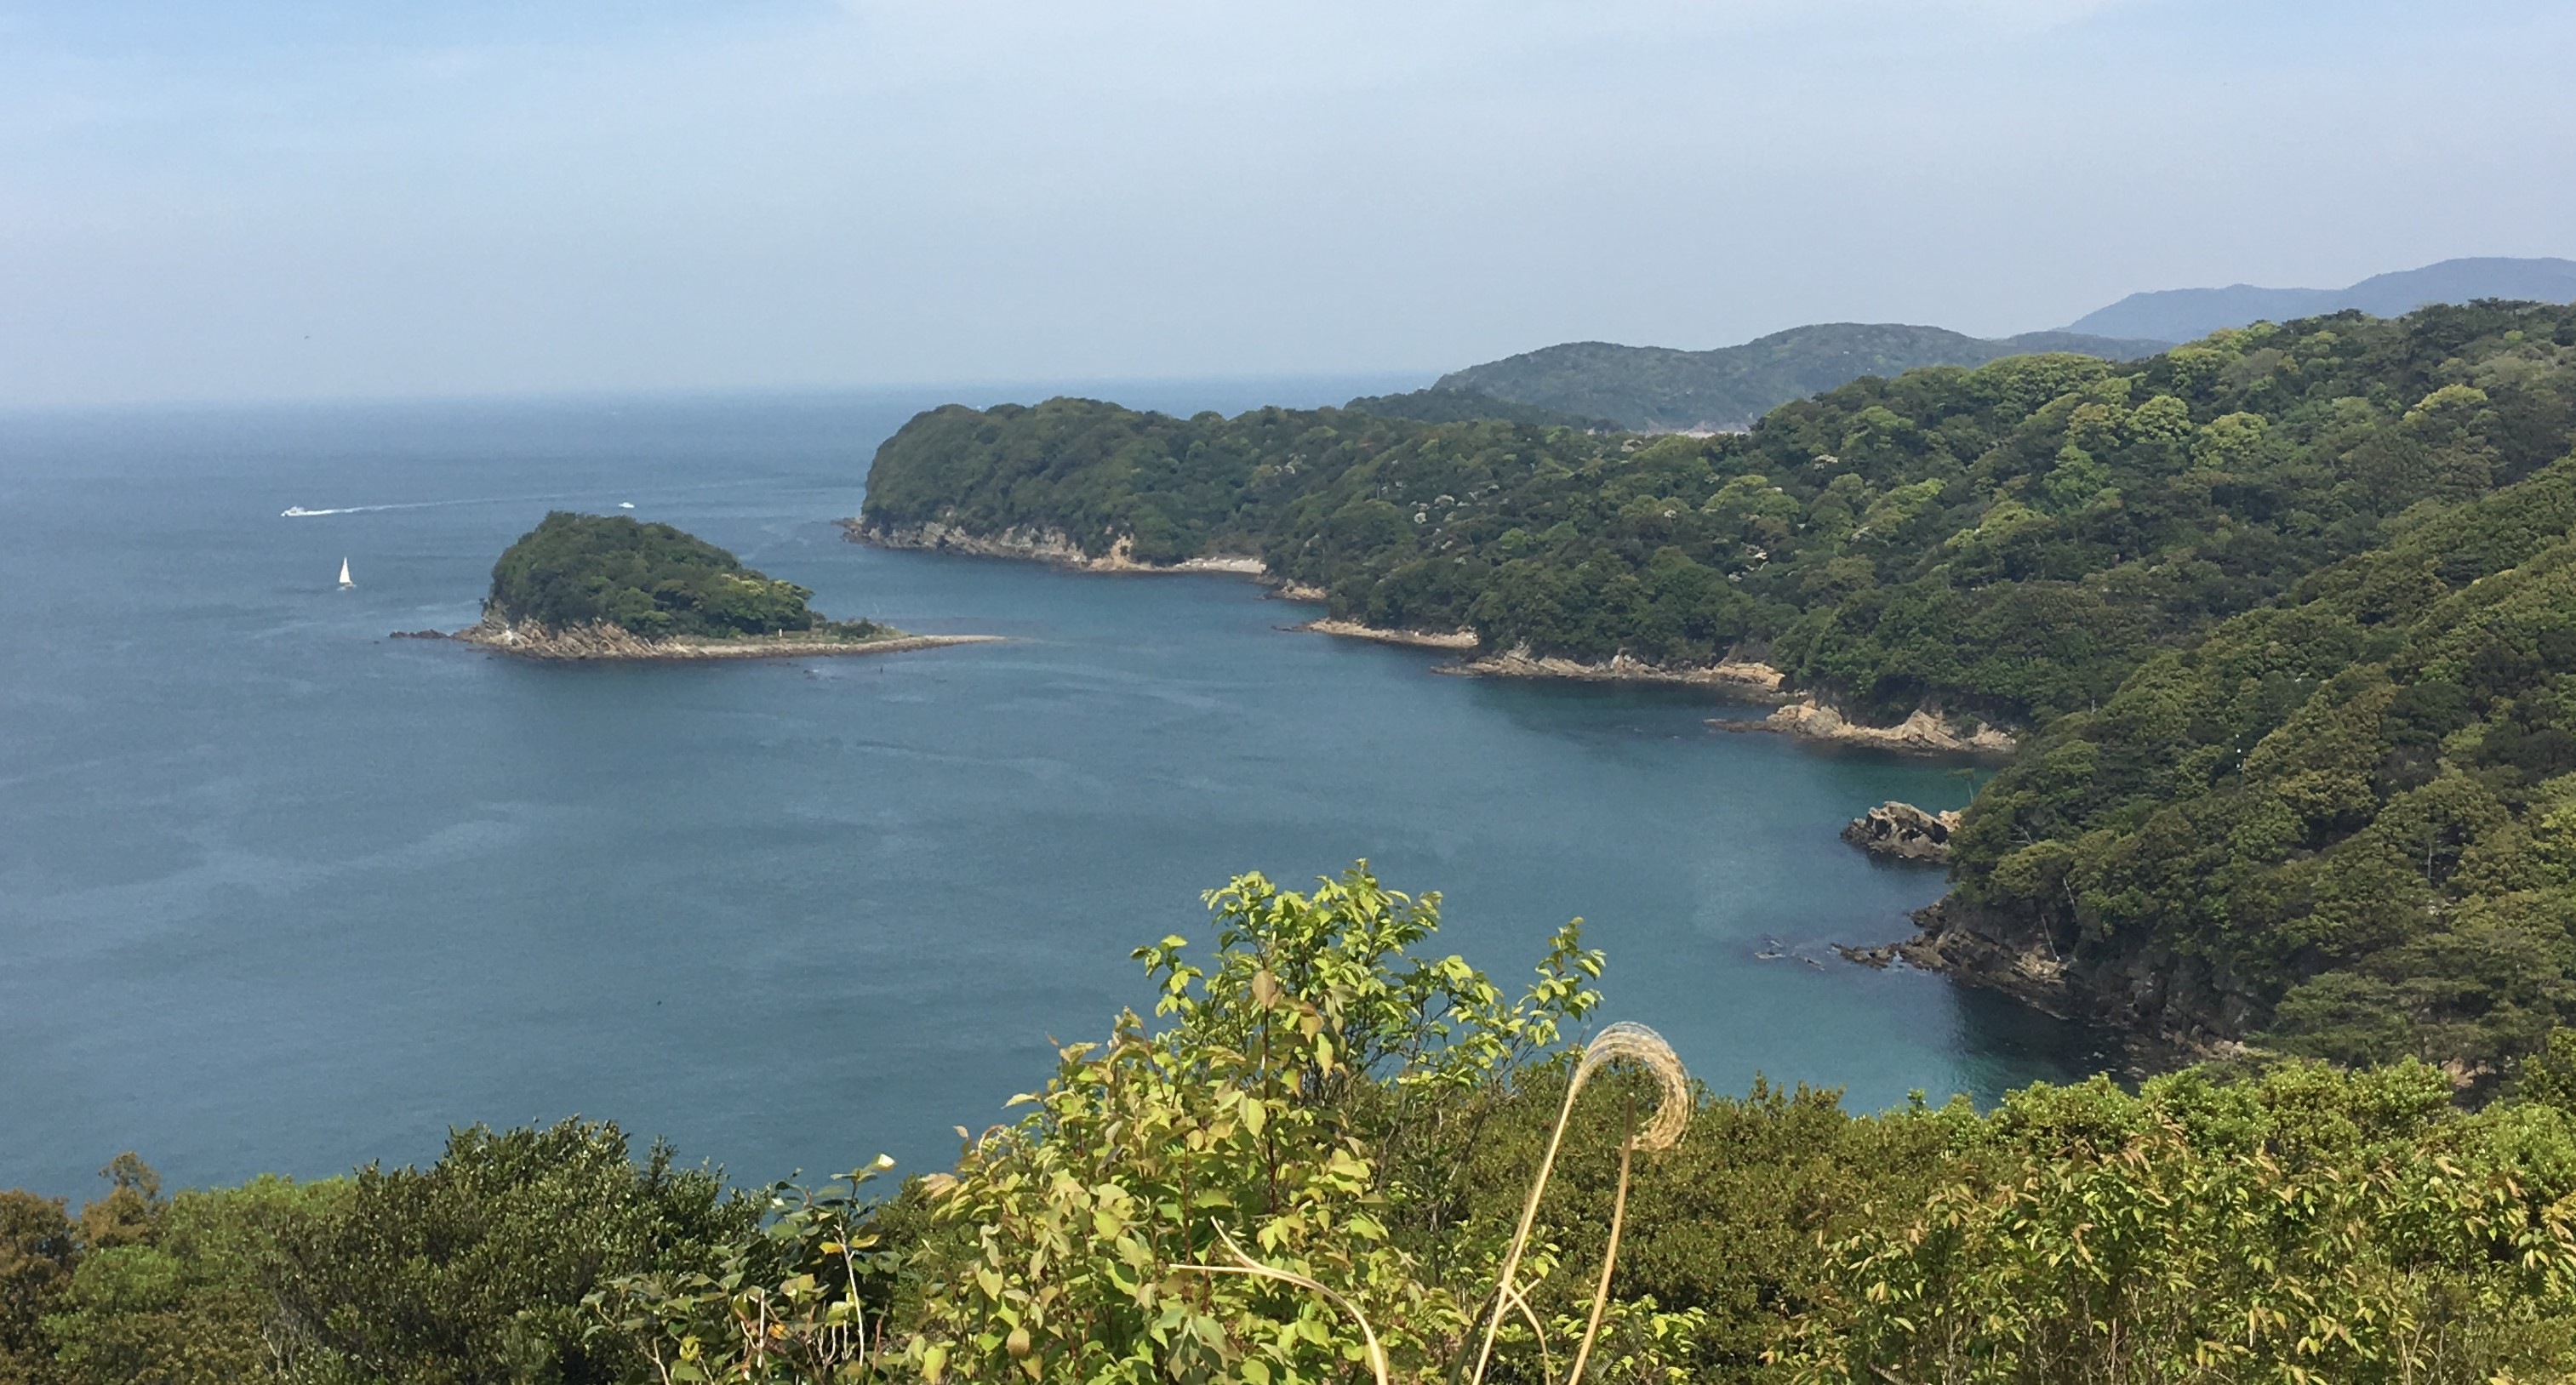 coast line of Okinoshima with kamishima visible in the background